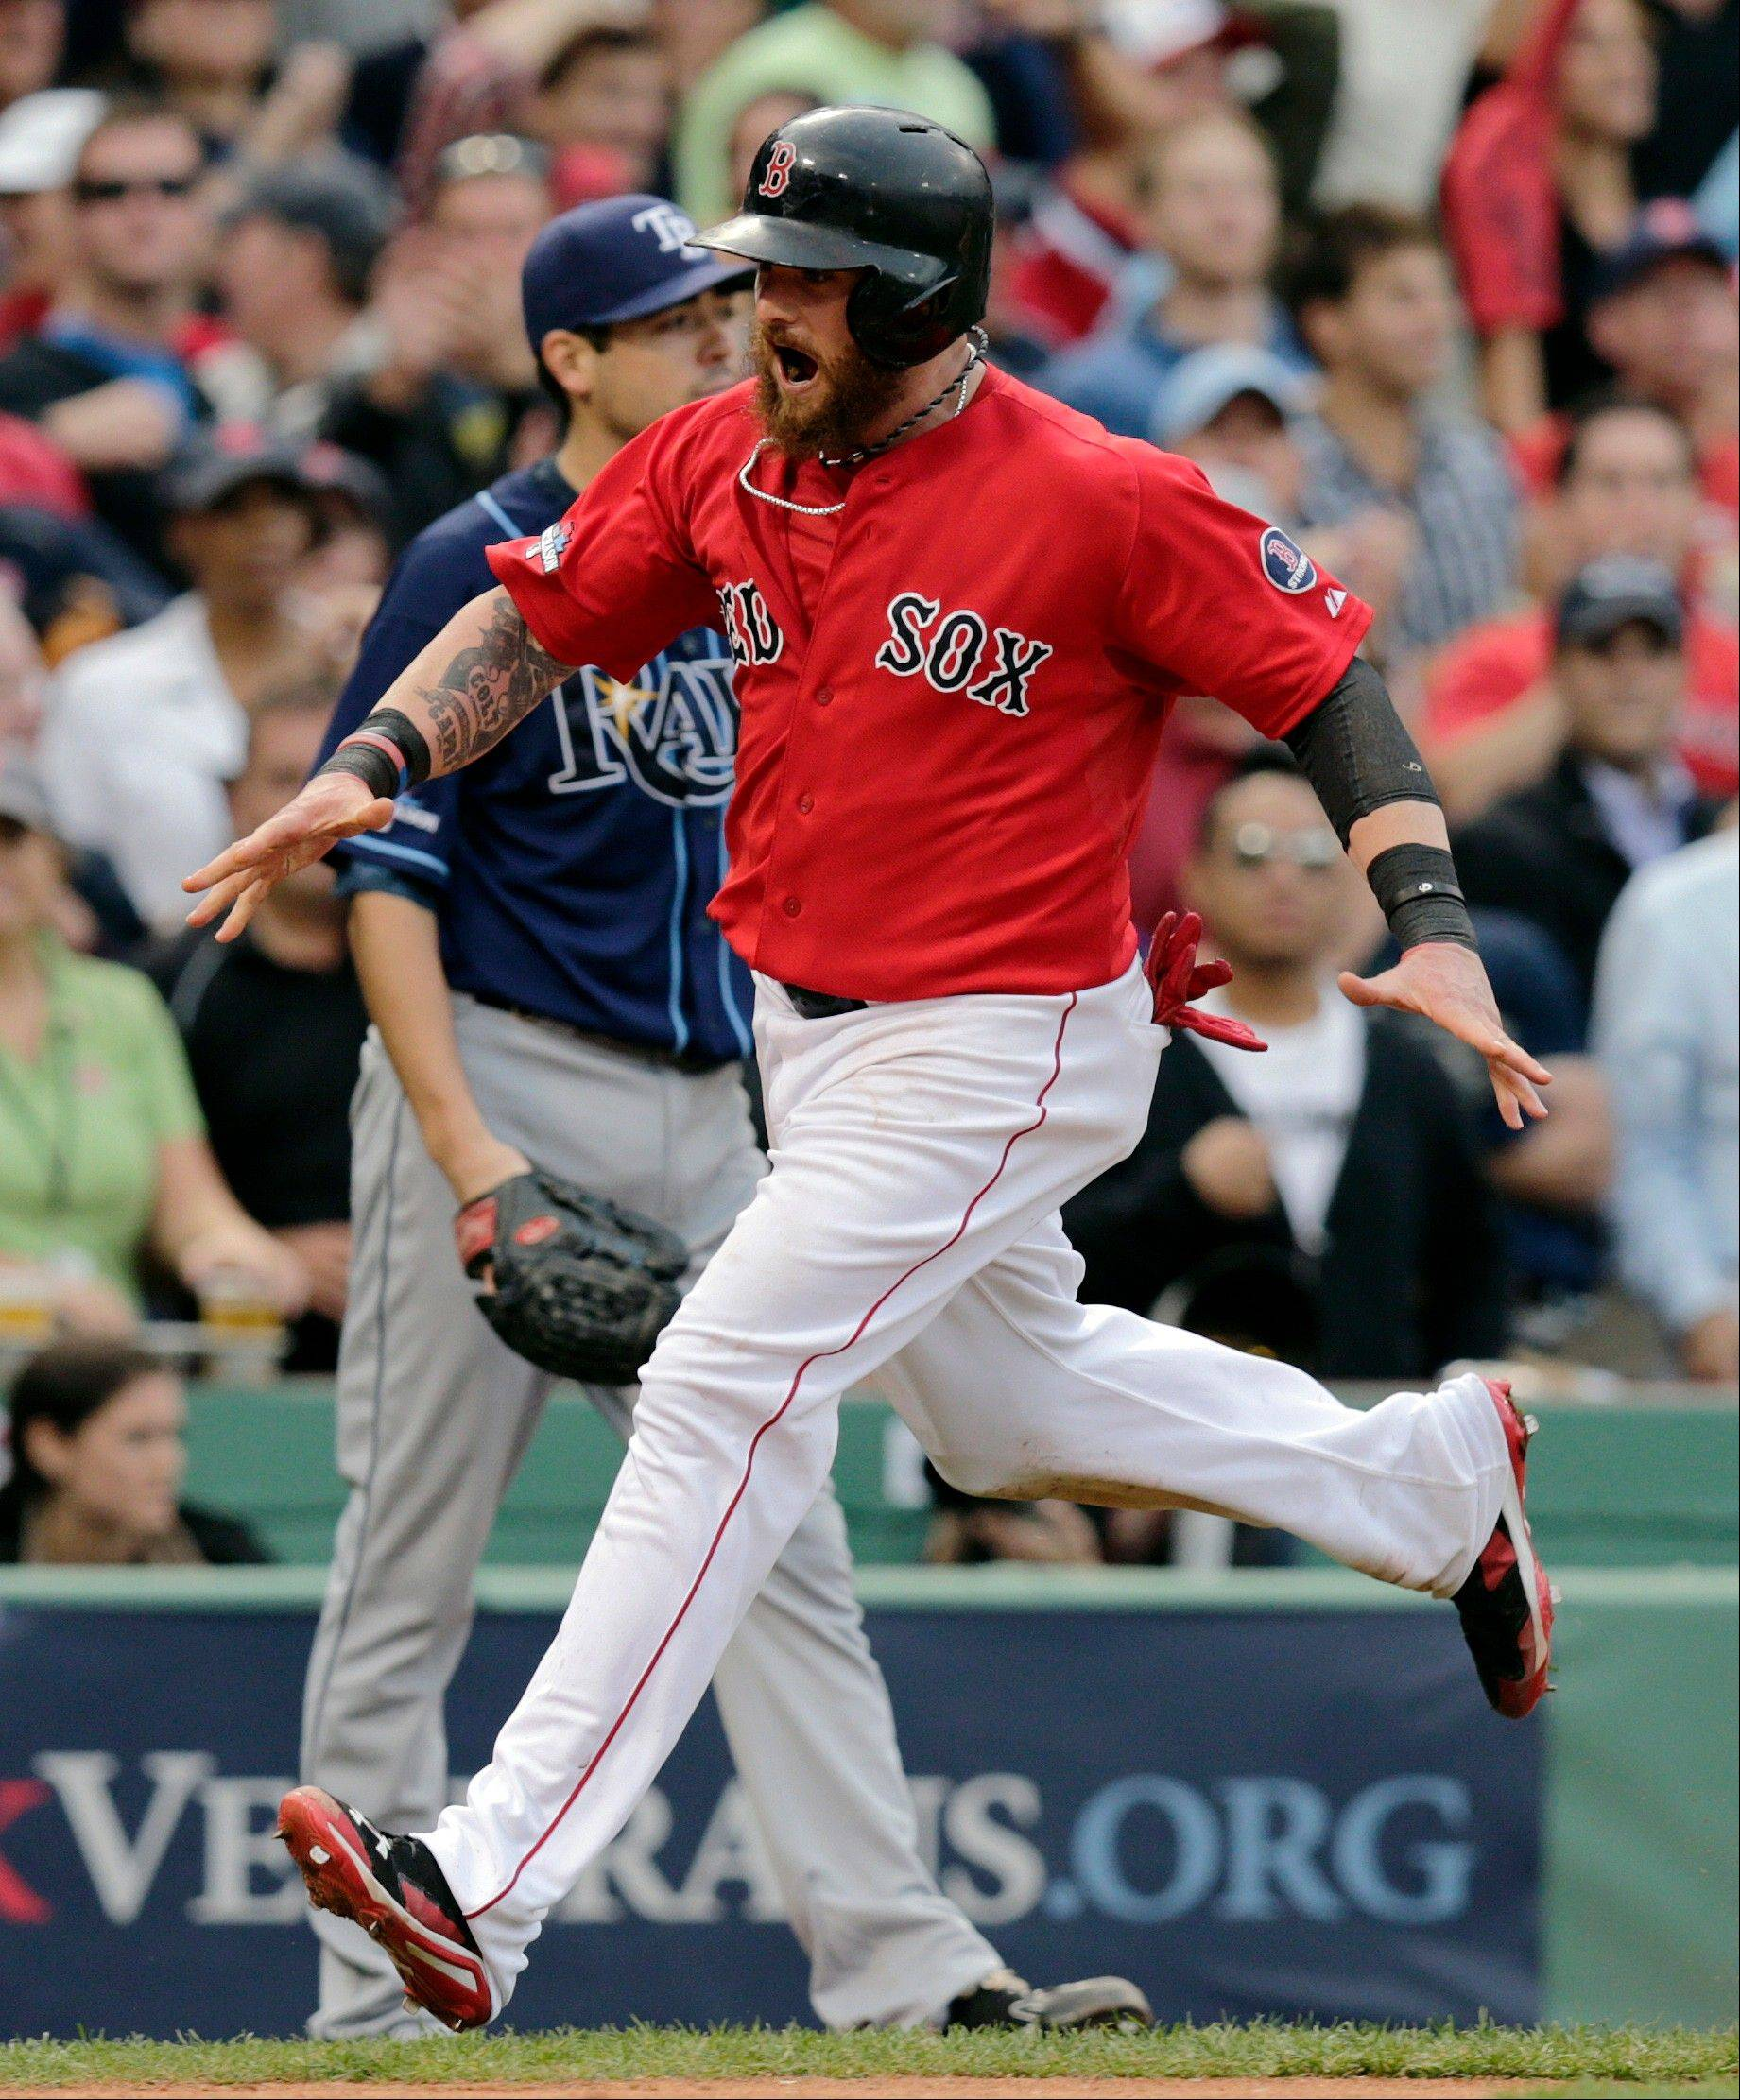 Boston�s Jonny Gomes scores on a double by Jarrod Saltalamacchia in the fifth inning in Game 1 of the American League Division Series against the Tampa Bay Rays on Friday in Boston.